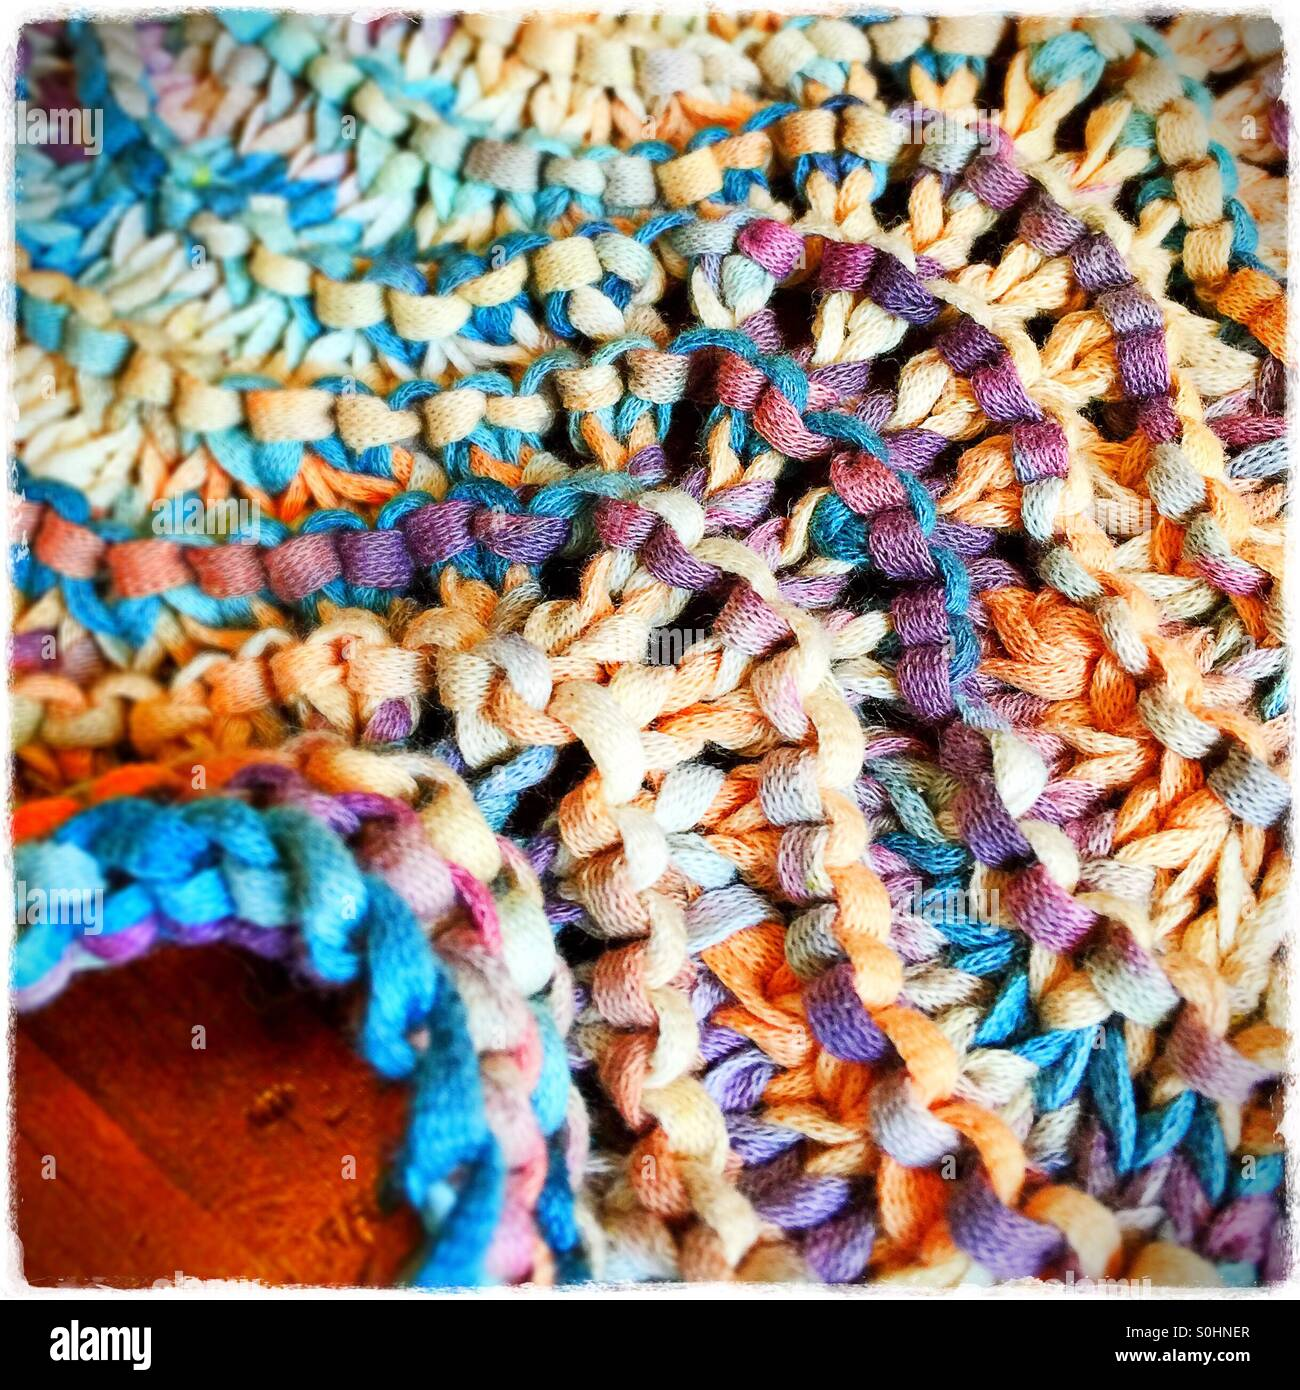 Variegated Yarn Stock Photos & Variegated Yarn Stock Images - Alamy